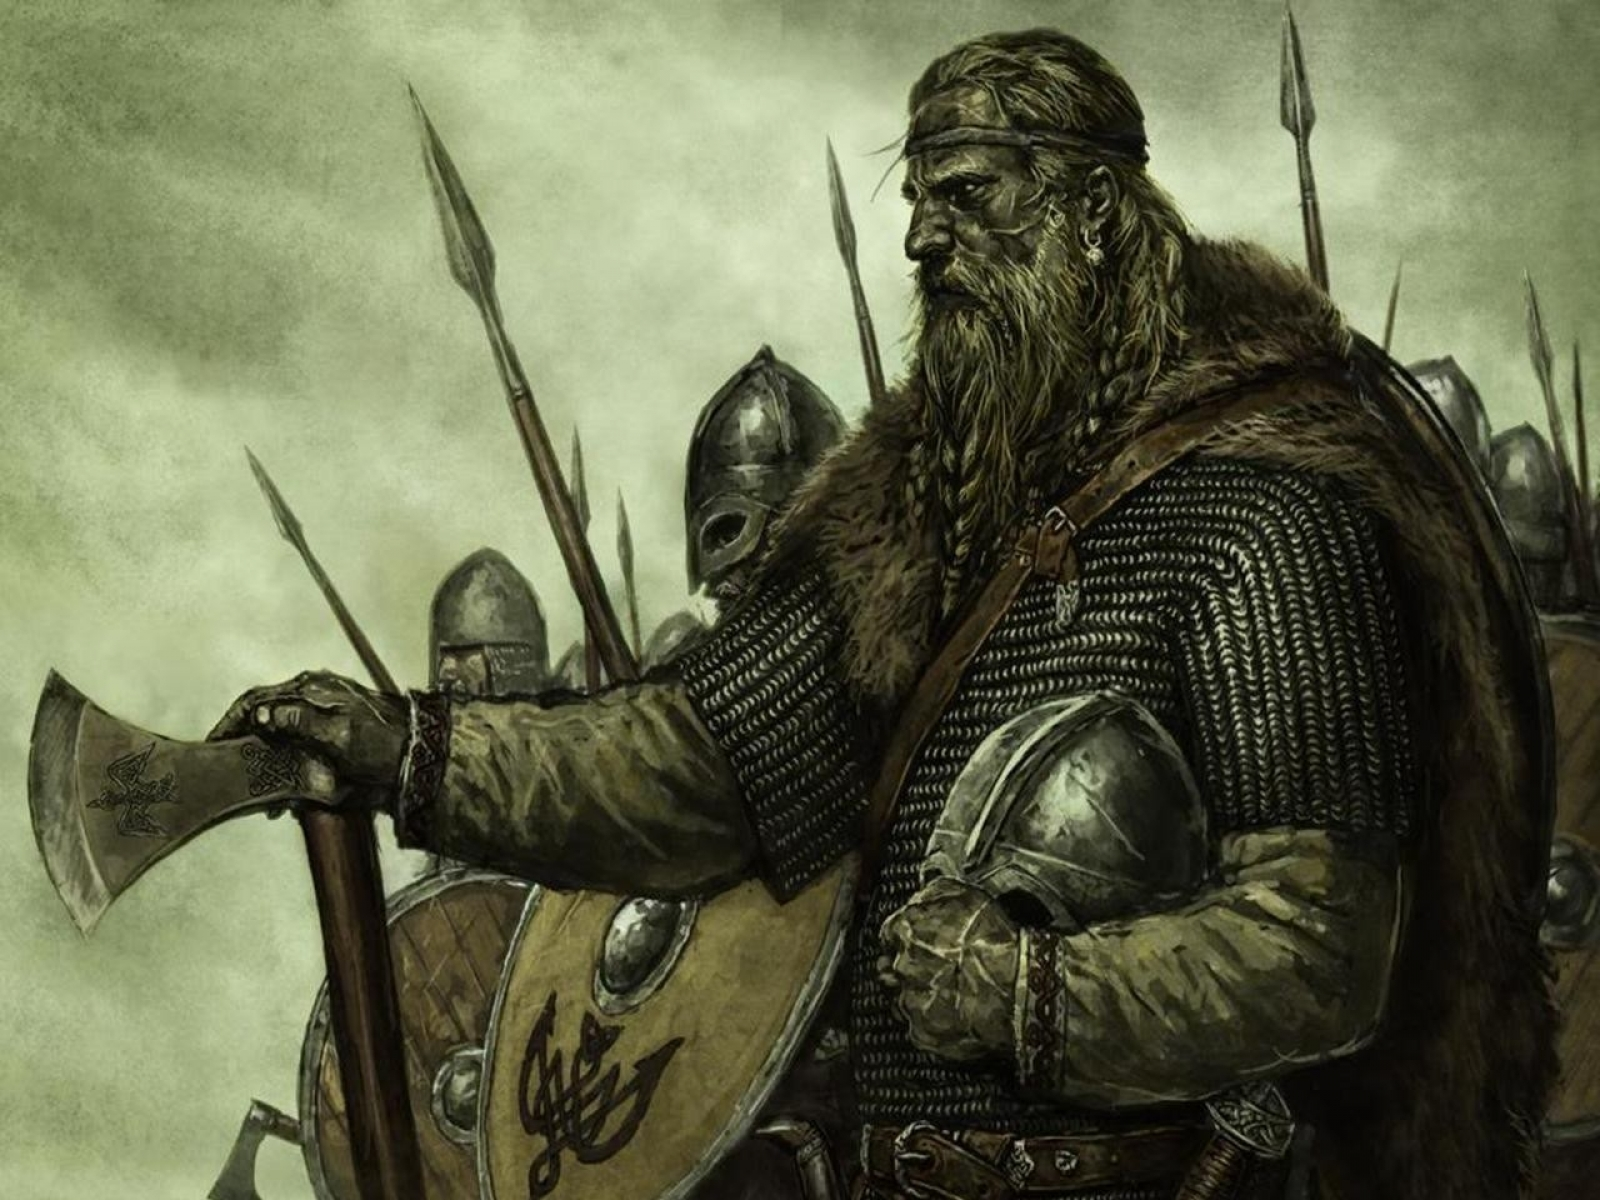 war_army_vikings_weapons_barbarian_mountblade_warband_1280x1024_wallpaper_Wallpaper_1600x1200_www.wall321.com.jpg